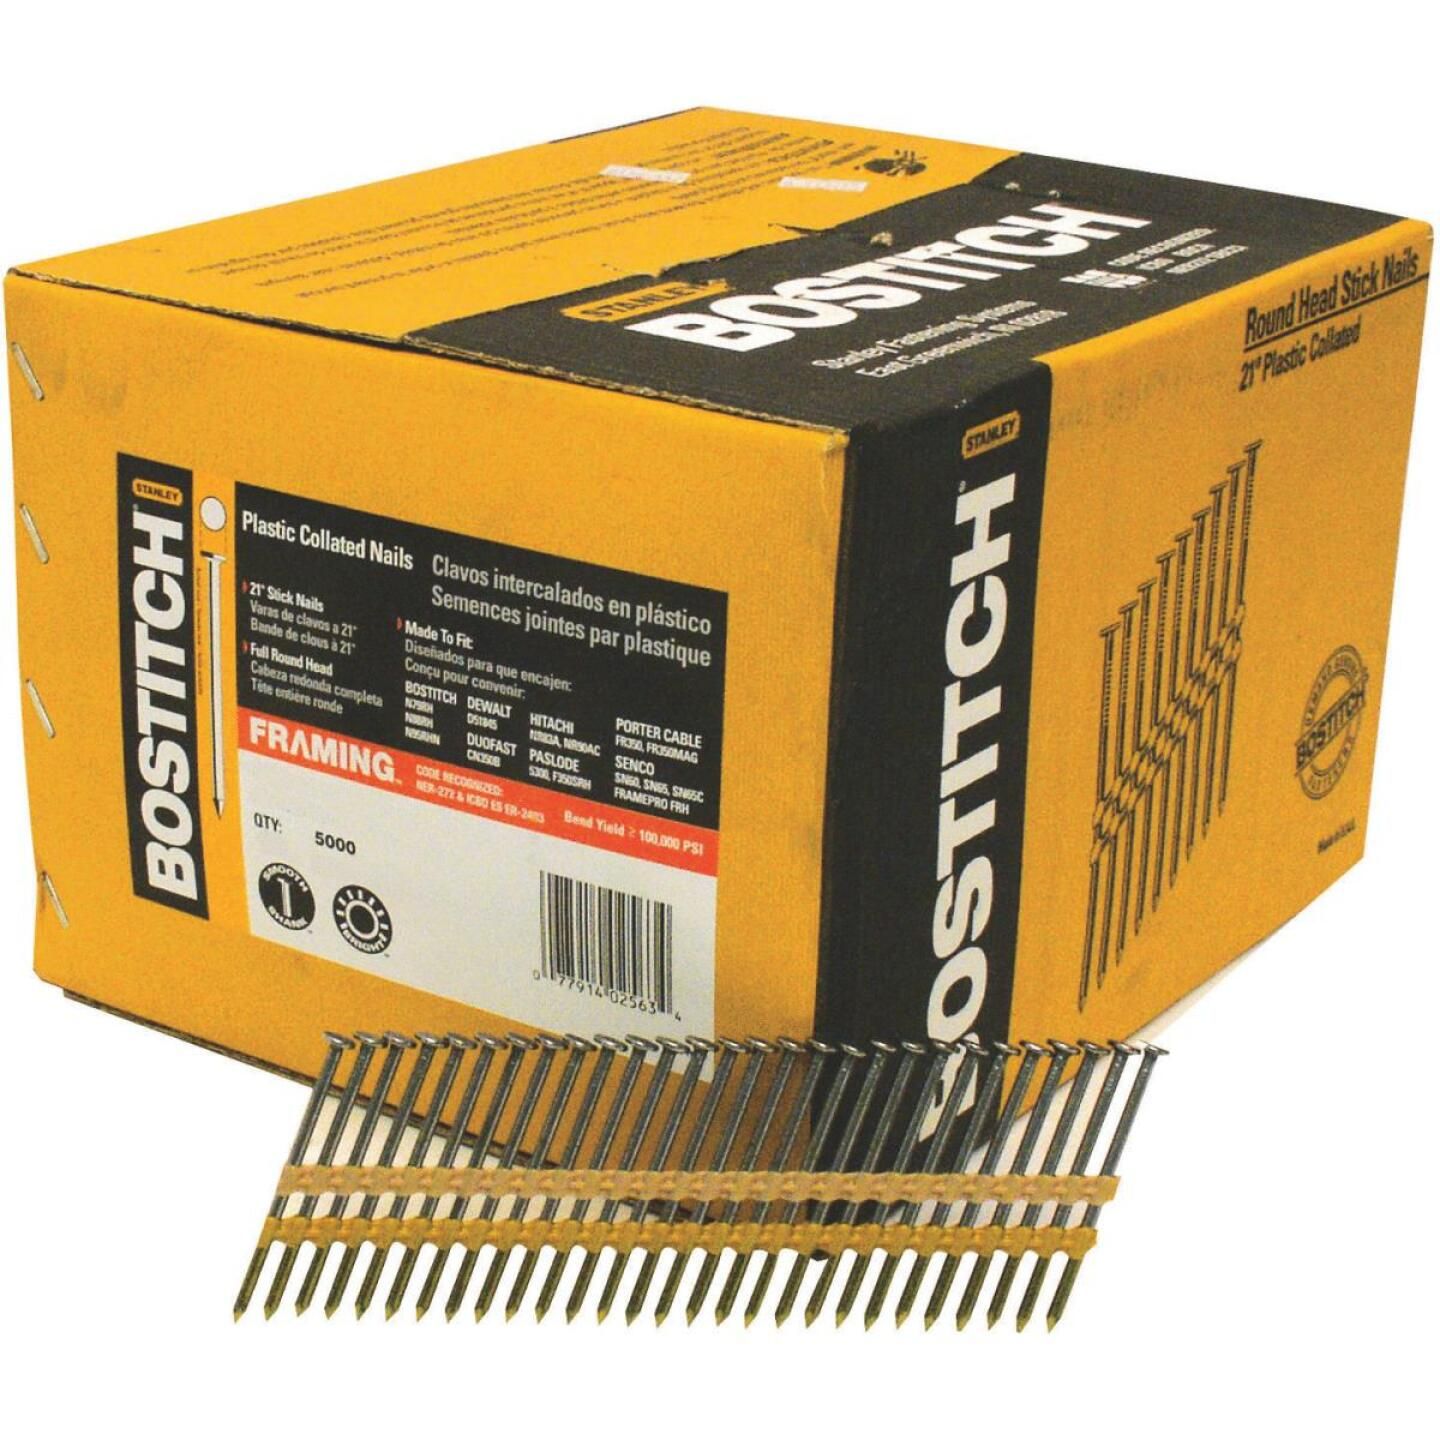 Bostitch 21 Degree Plastic Strip Hot-Dipped Galvanized Full Round Head Framing Stick Nails, 2-3/8 In. x .113 In. (5000 Ct.) Image 1